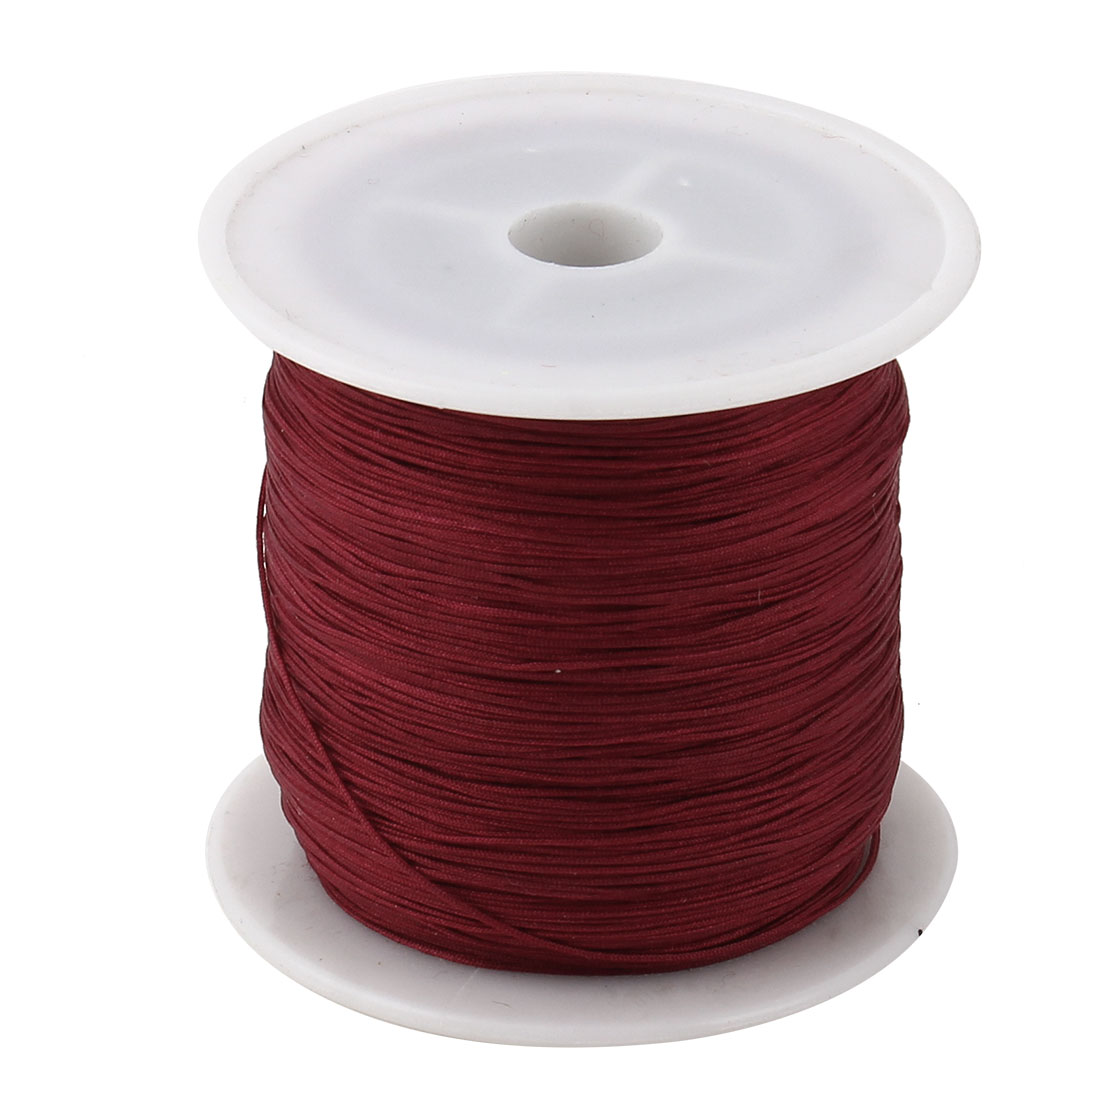 Household Nylon DIY Art Craft Chinese Knot Cord String Rope Burgundy 153 Yards